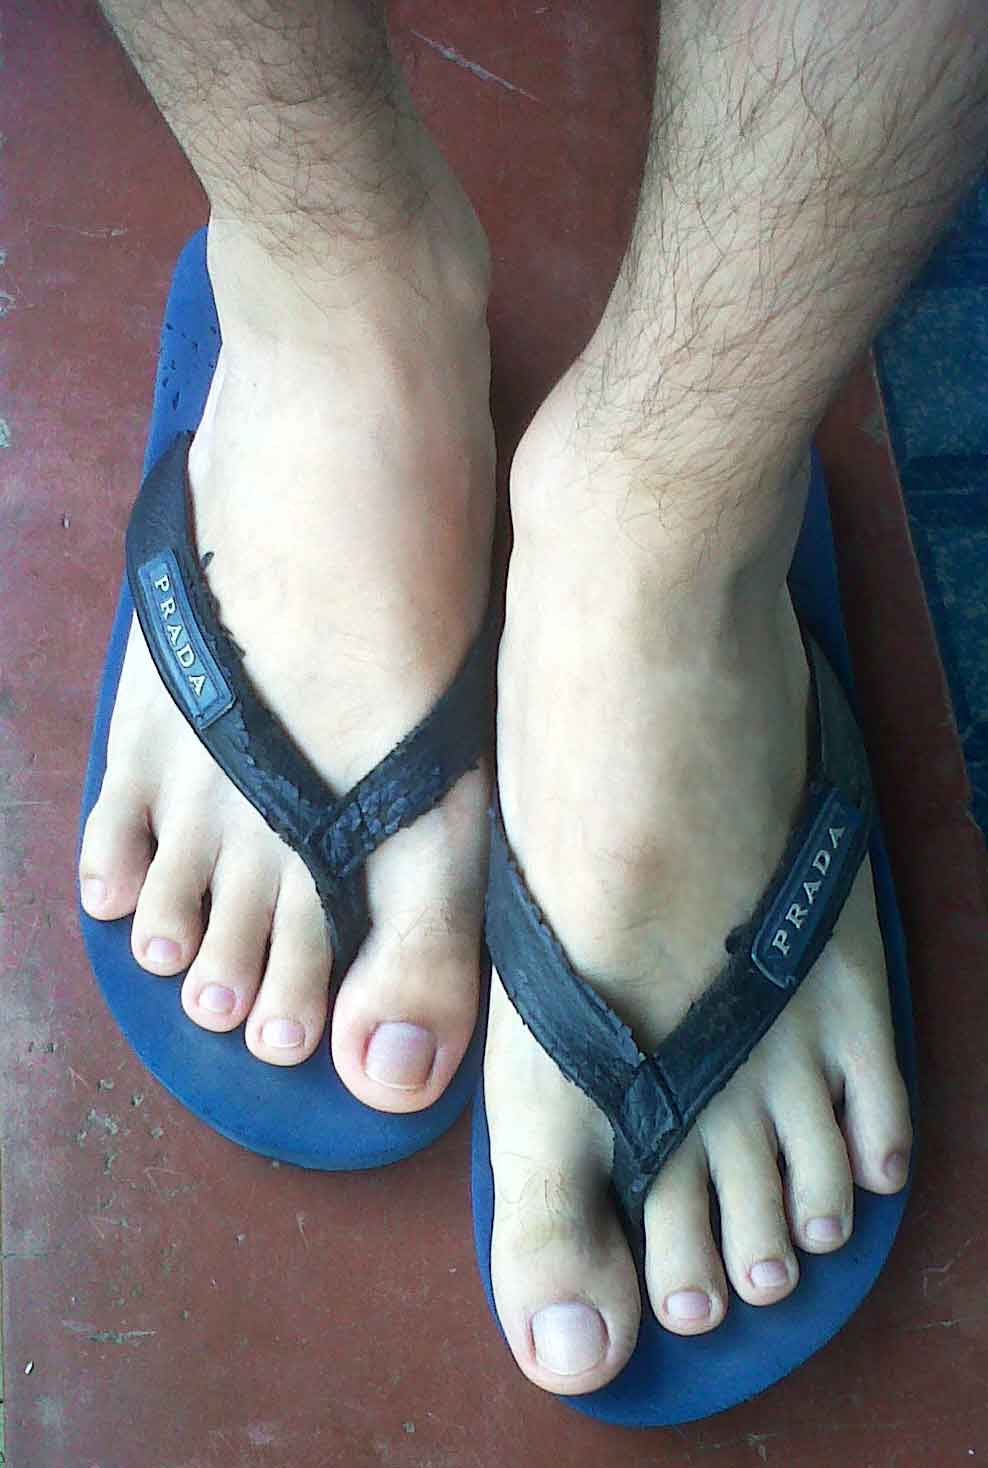 Mexican Foot Fetish